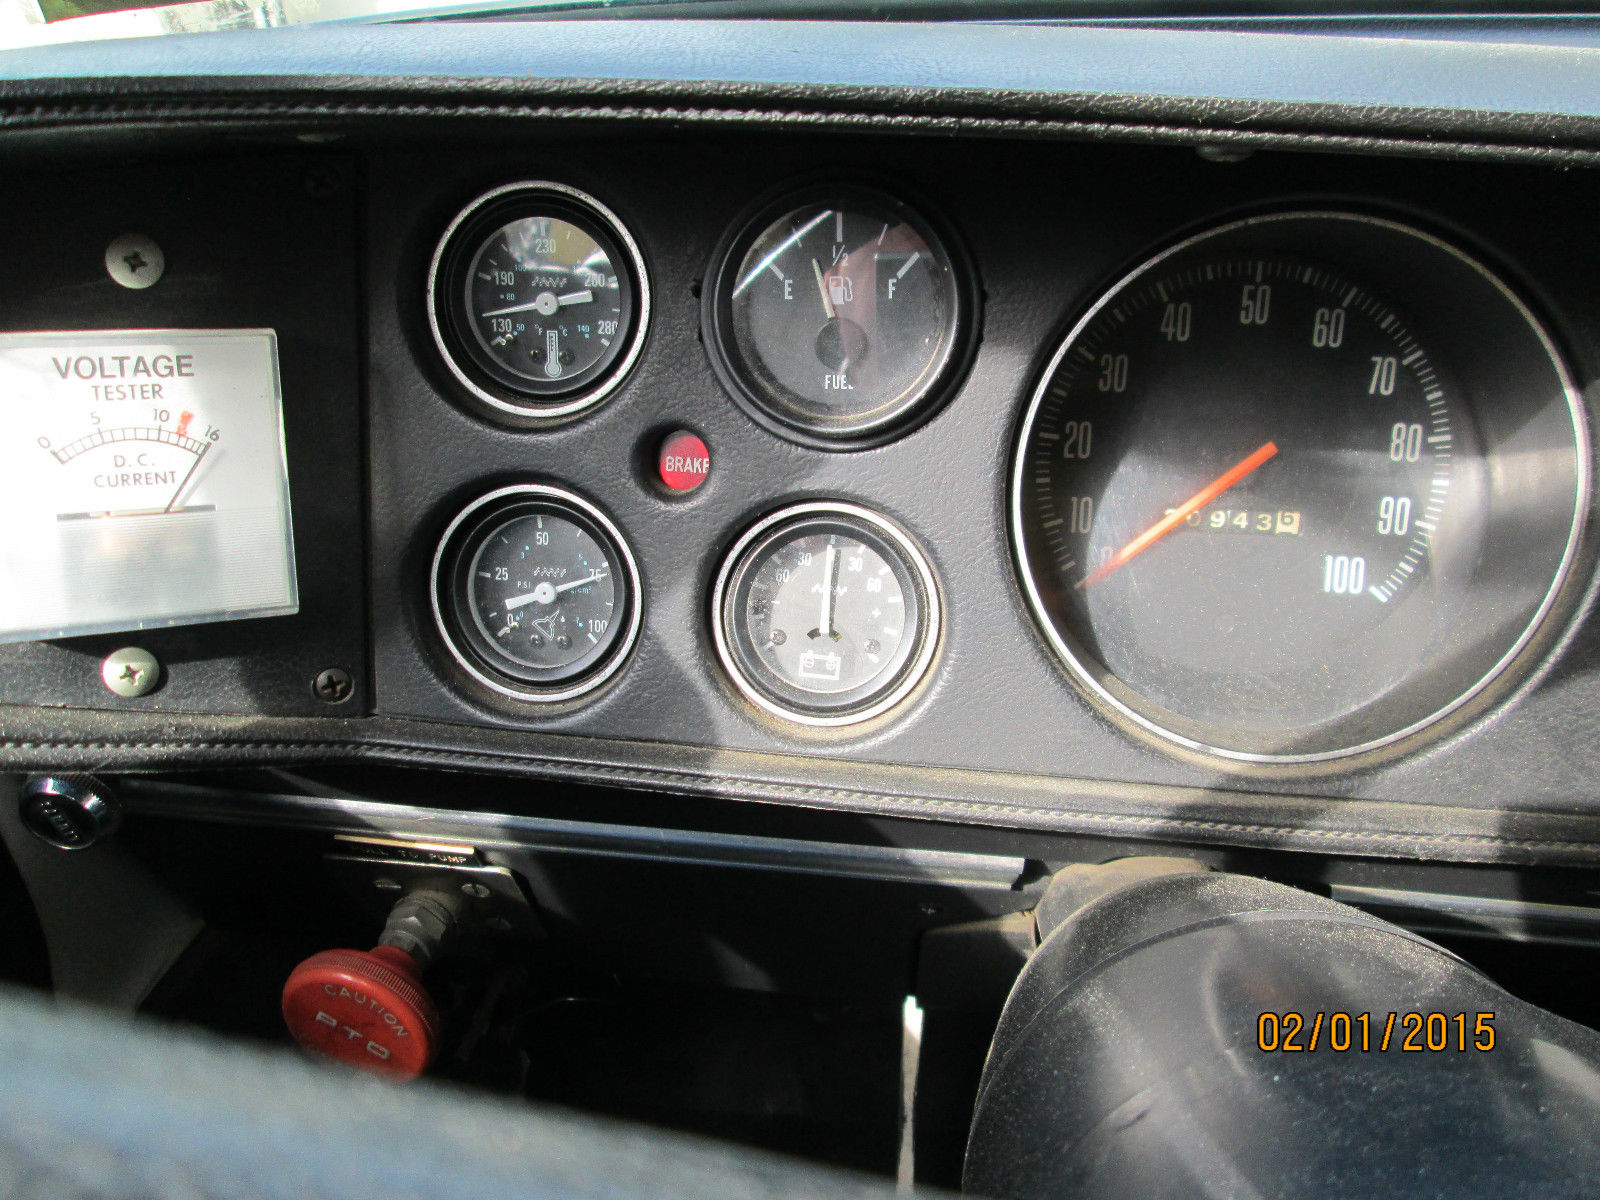 1976 Dodge Power Wagon W300 Mini Pumper Fire Truck 20943 Miles No 76 Wiring Schematic Prevnext